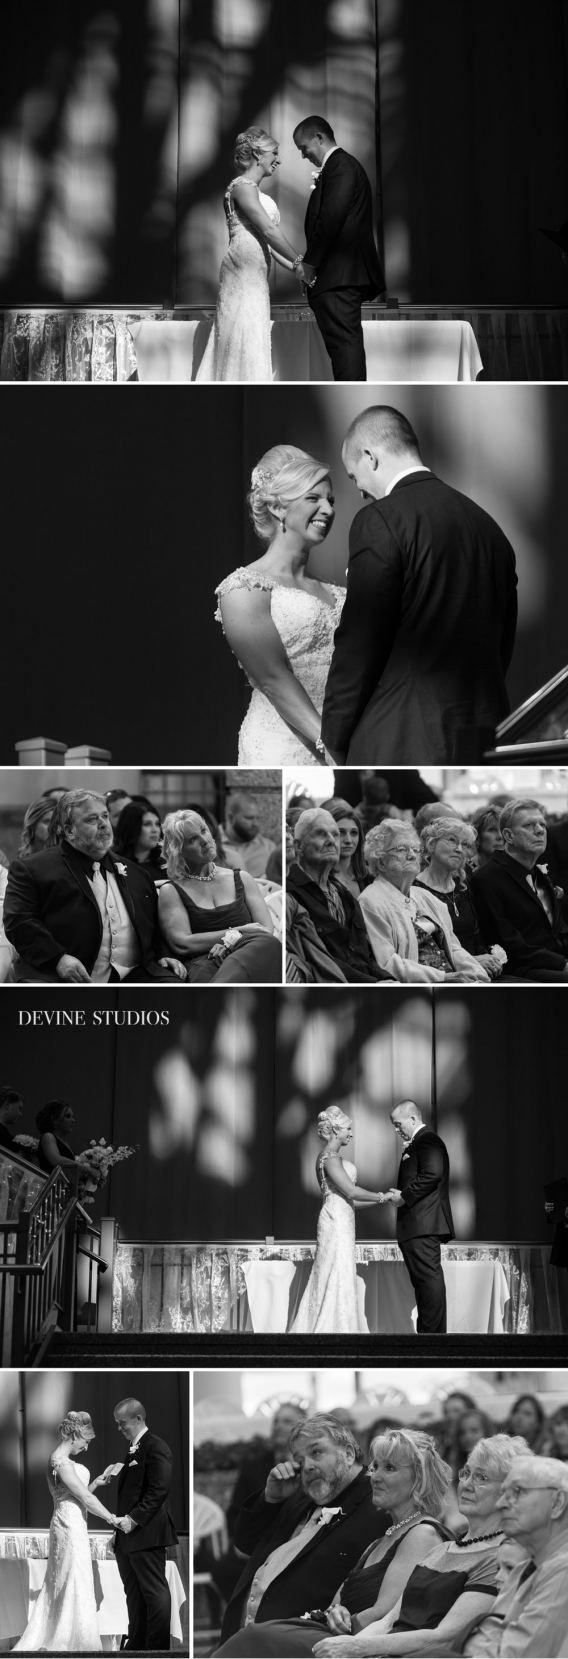 http://devinestudios.com/boudoir/wp-content/uploads/2016/05/10-839-post/Kansas-City-Wedding-Photography-Town-Pavilion-photojournalist-photographers11(pp_w568_h1659).jpg